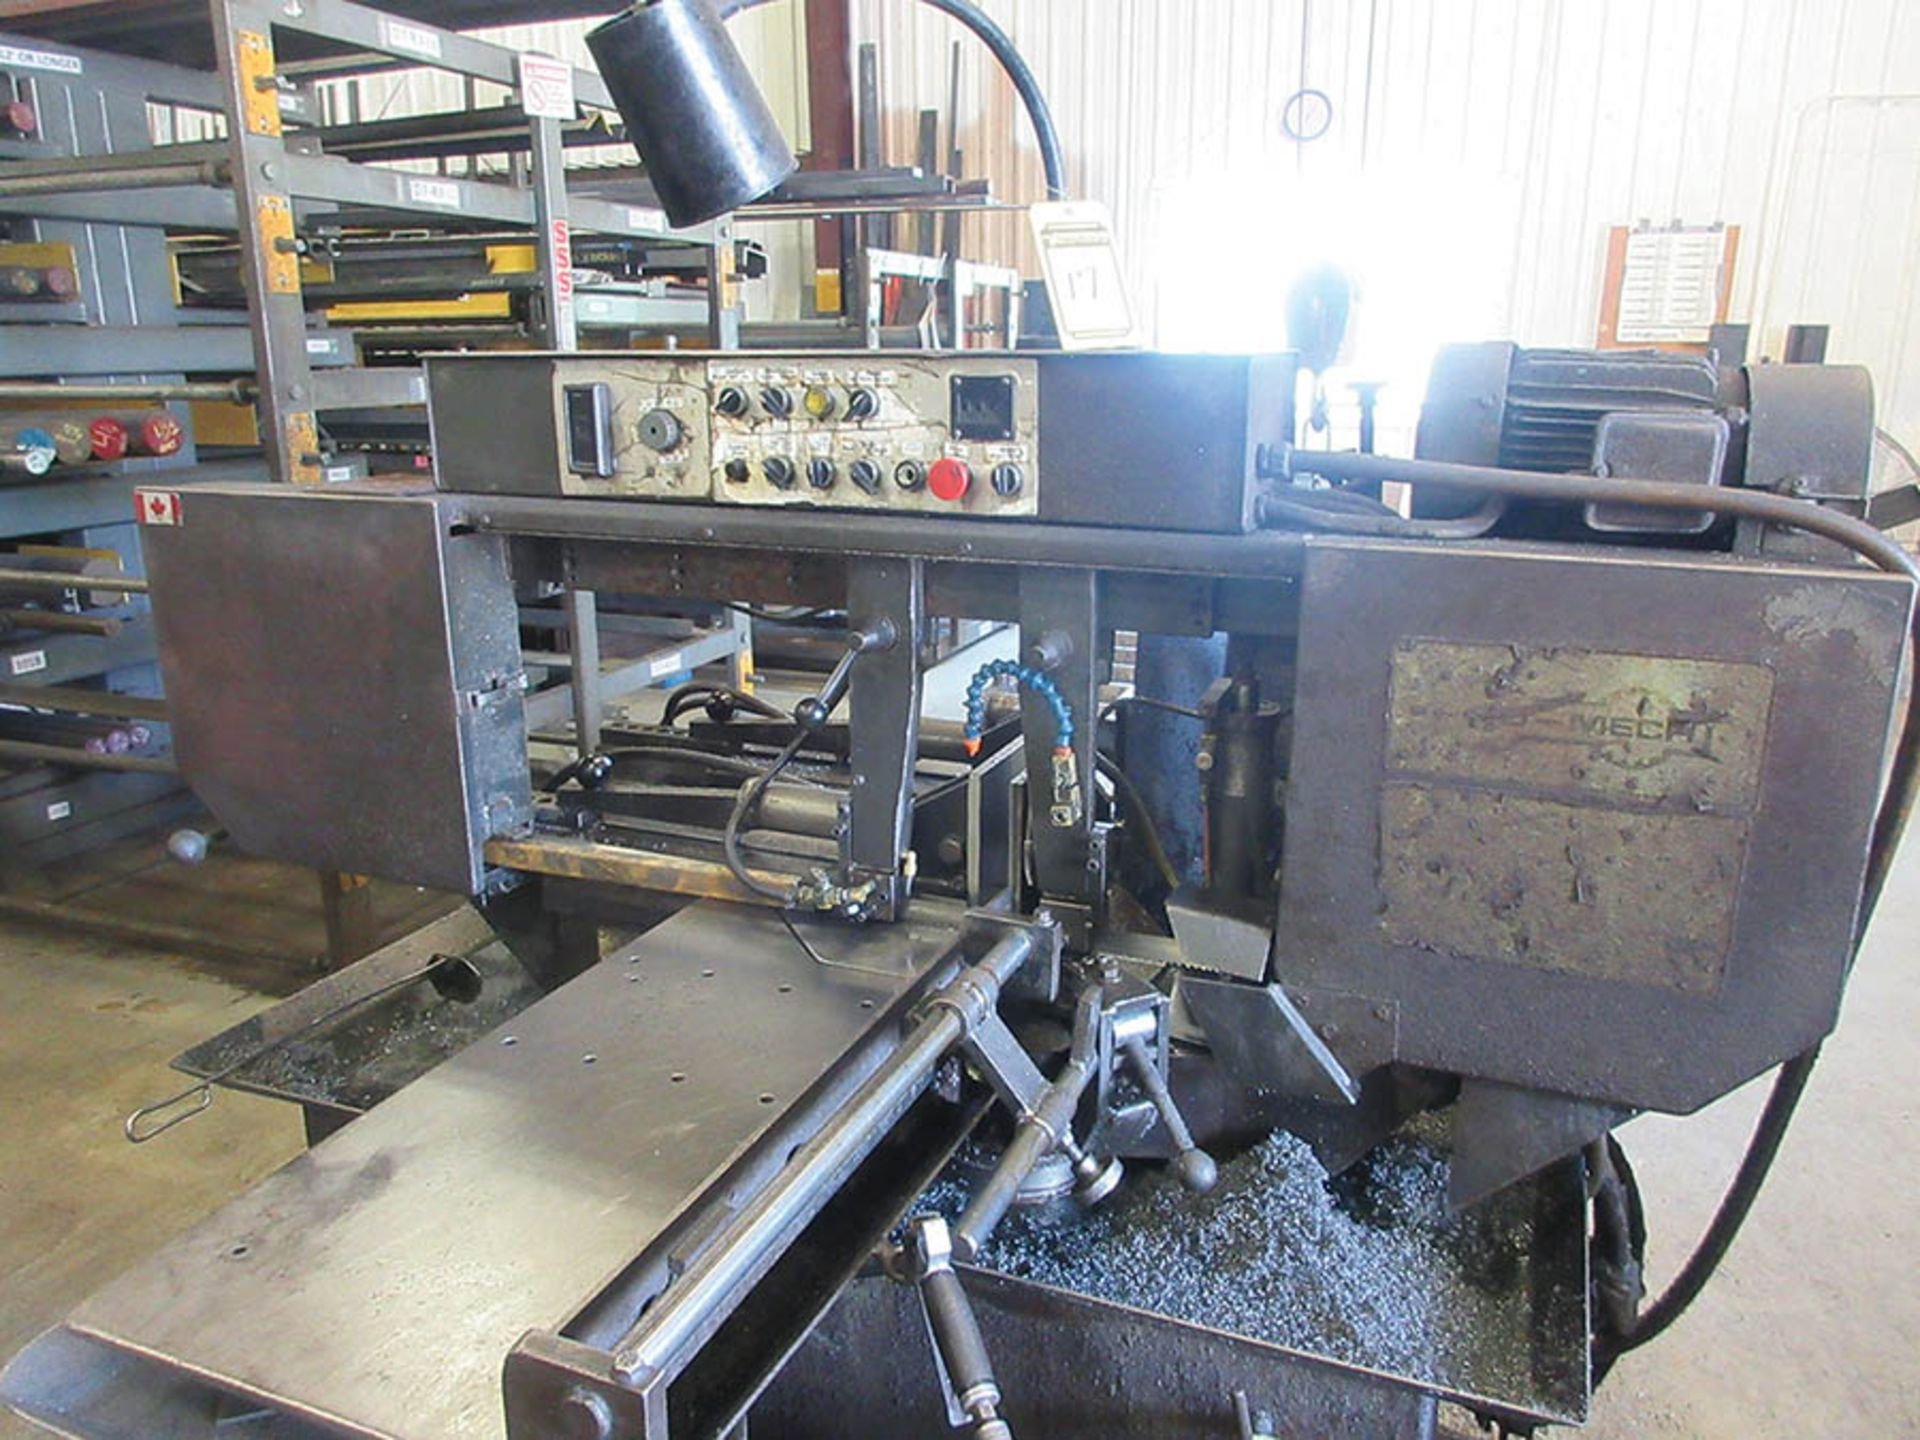 Lot 17 - HYD-MECH S-20A AUTOMATIC HORIZONTAL BAND SAW, S/N 10586134, APPROX. 19'' X 100'' FEED TABLE & 18'' X